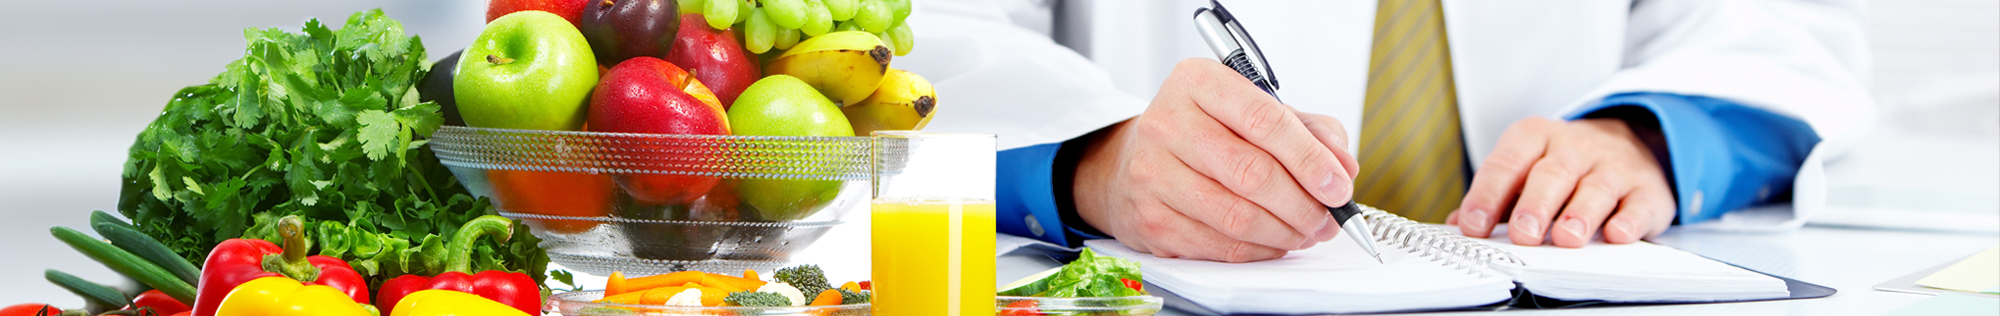 nutrition analysis and diet tracking software program